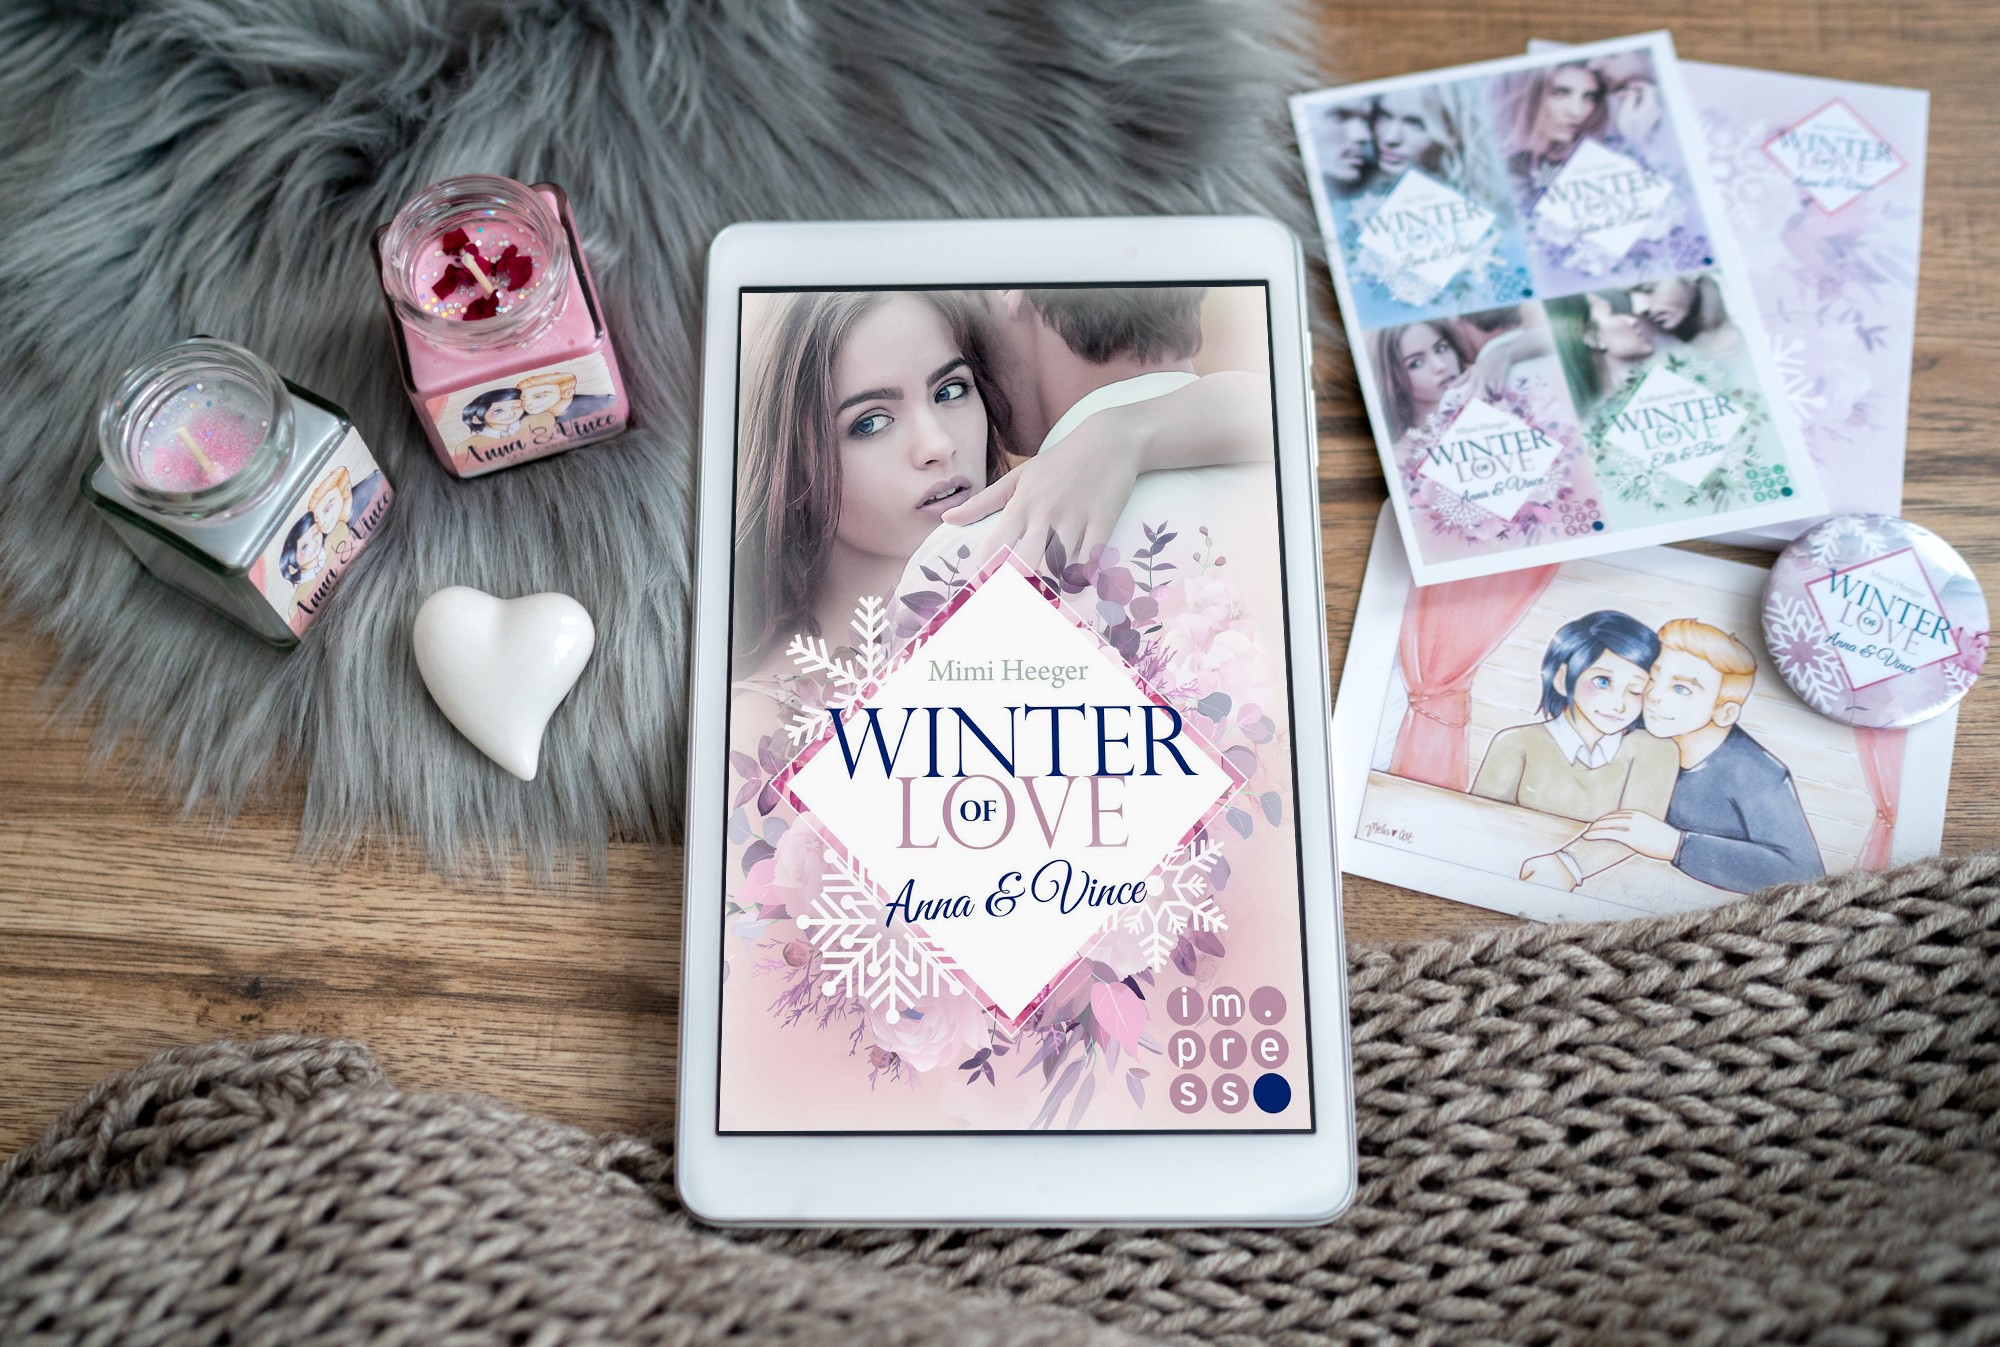 Winter of Love: Anna & Vince – Mimi Heeger graphic